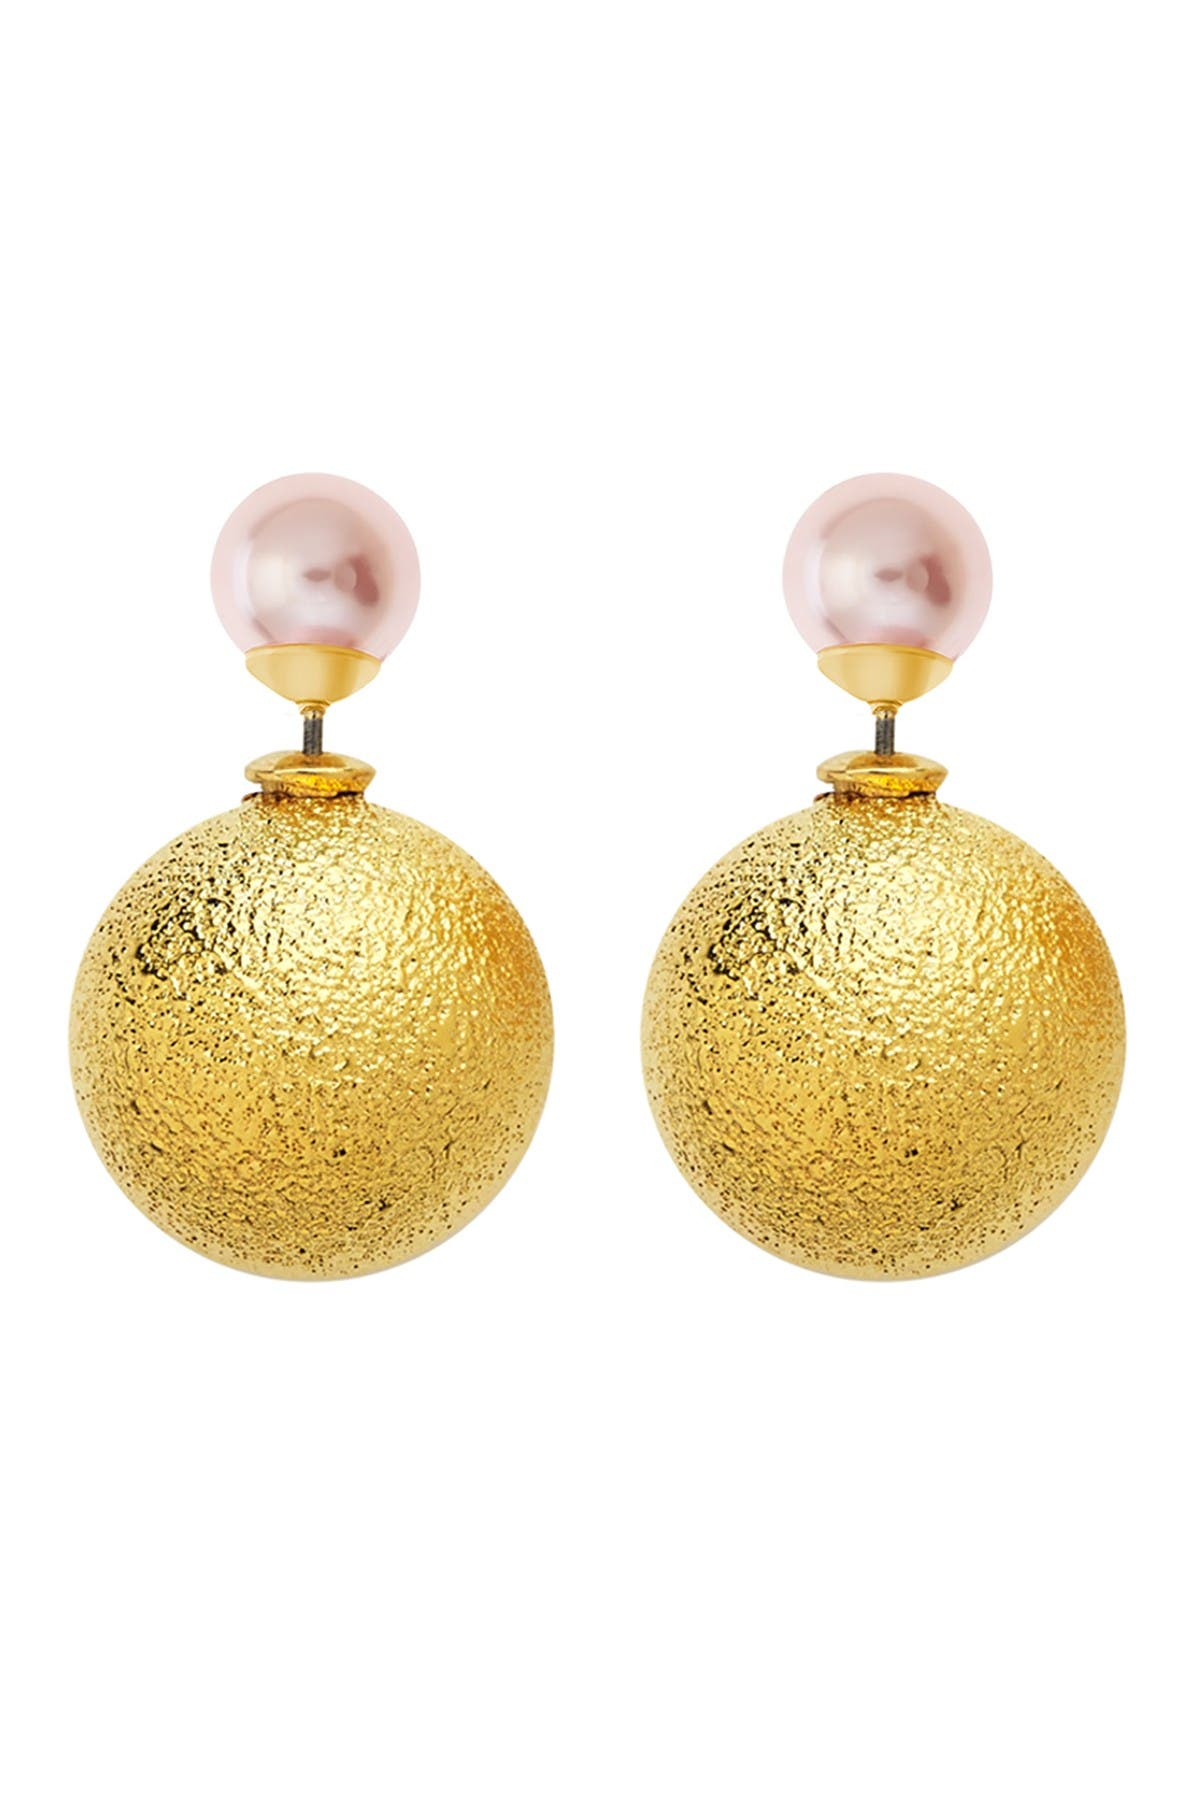 Image of Sterling Forever 14K Gold Plated Brass Brushed & Pink Imitation Pearl Double Sided Stud Earrings